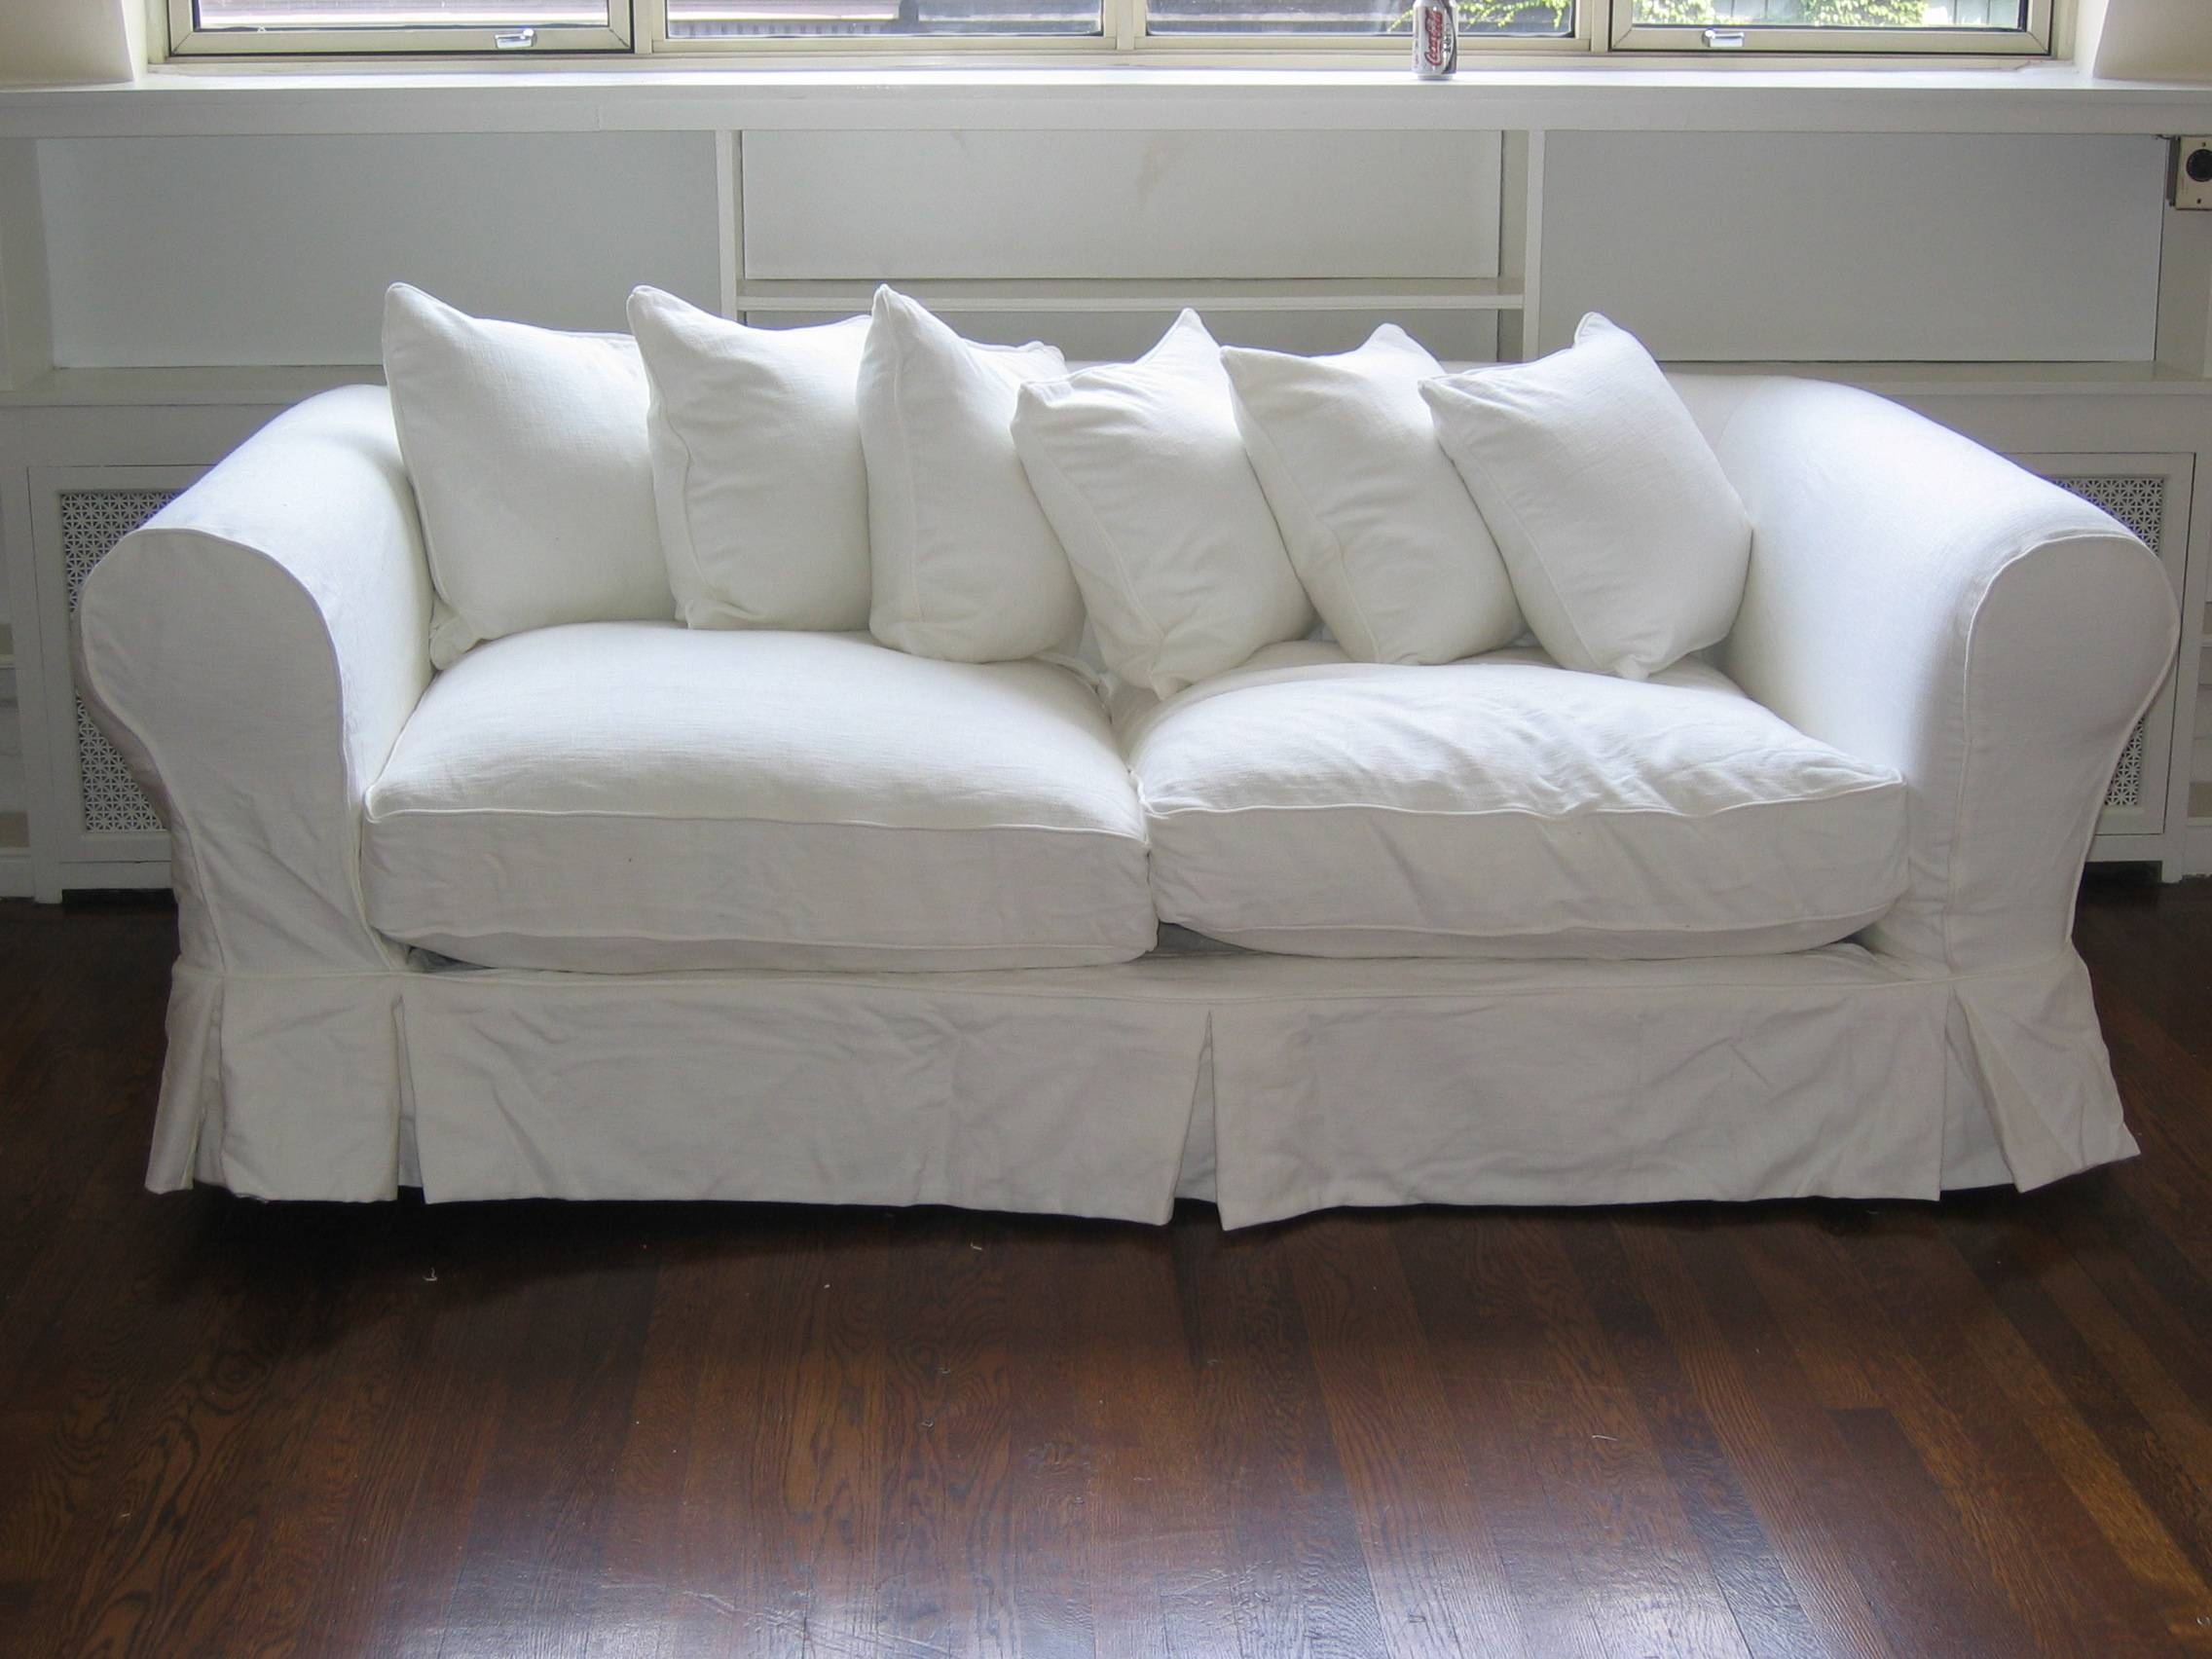 New White Fabric Sofa 30 Sofas And Couches Set With White Fabric Sofa with White Fabric Sofas (Image 23 of 30)